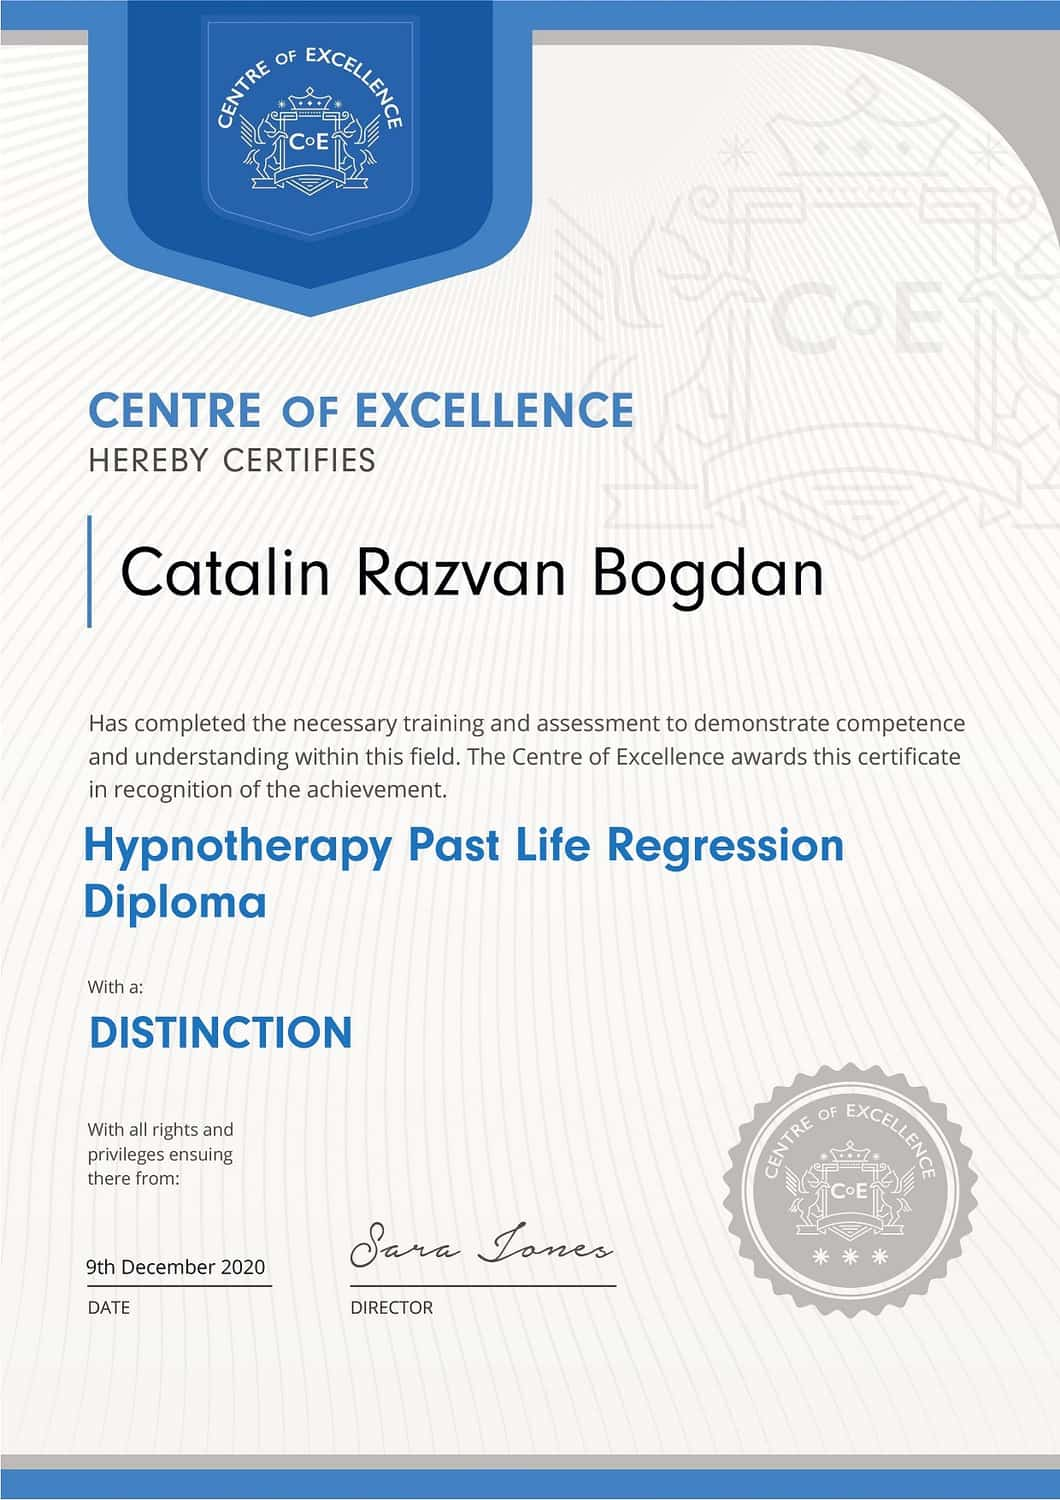 Hypnotherapy-Past-Life-Regression-Diploma_0012